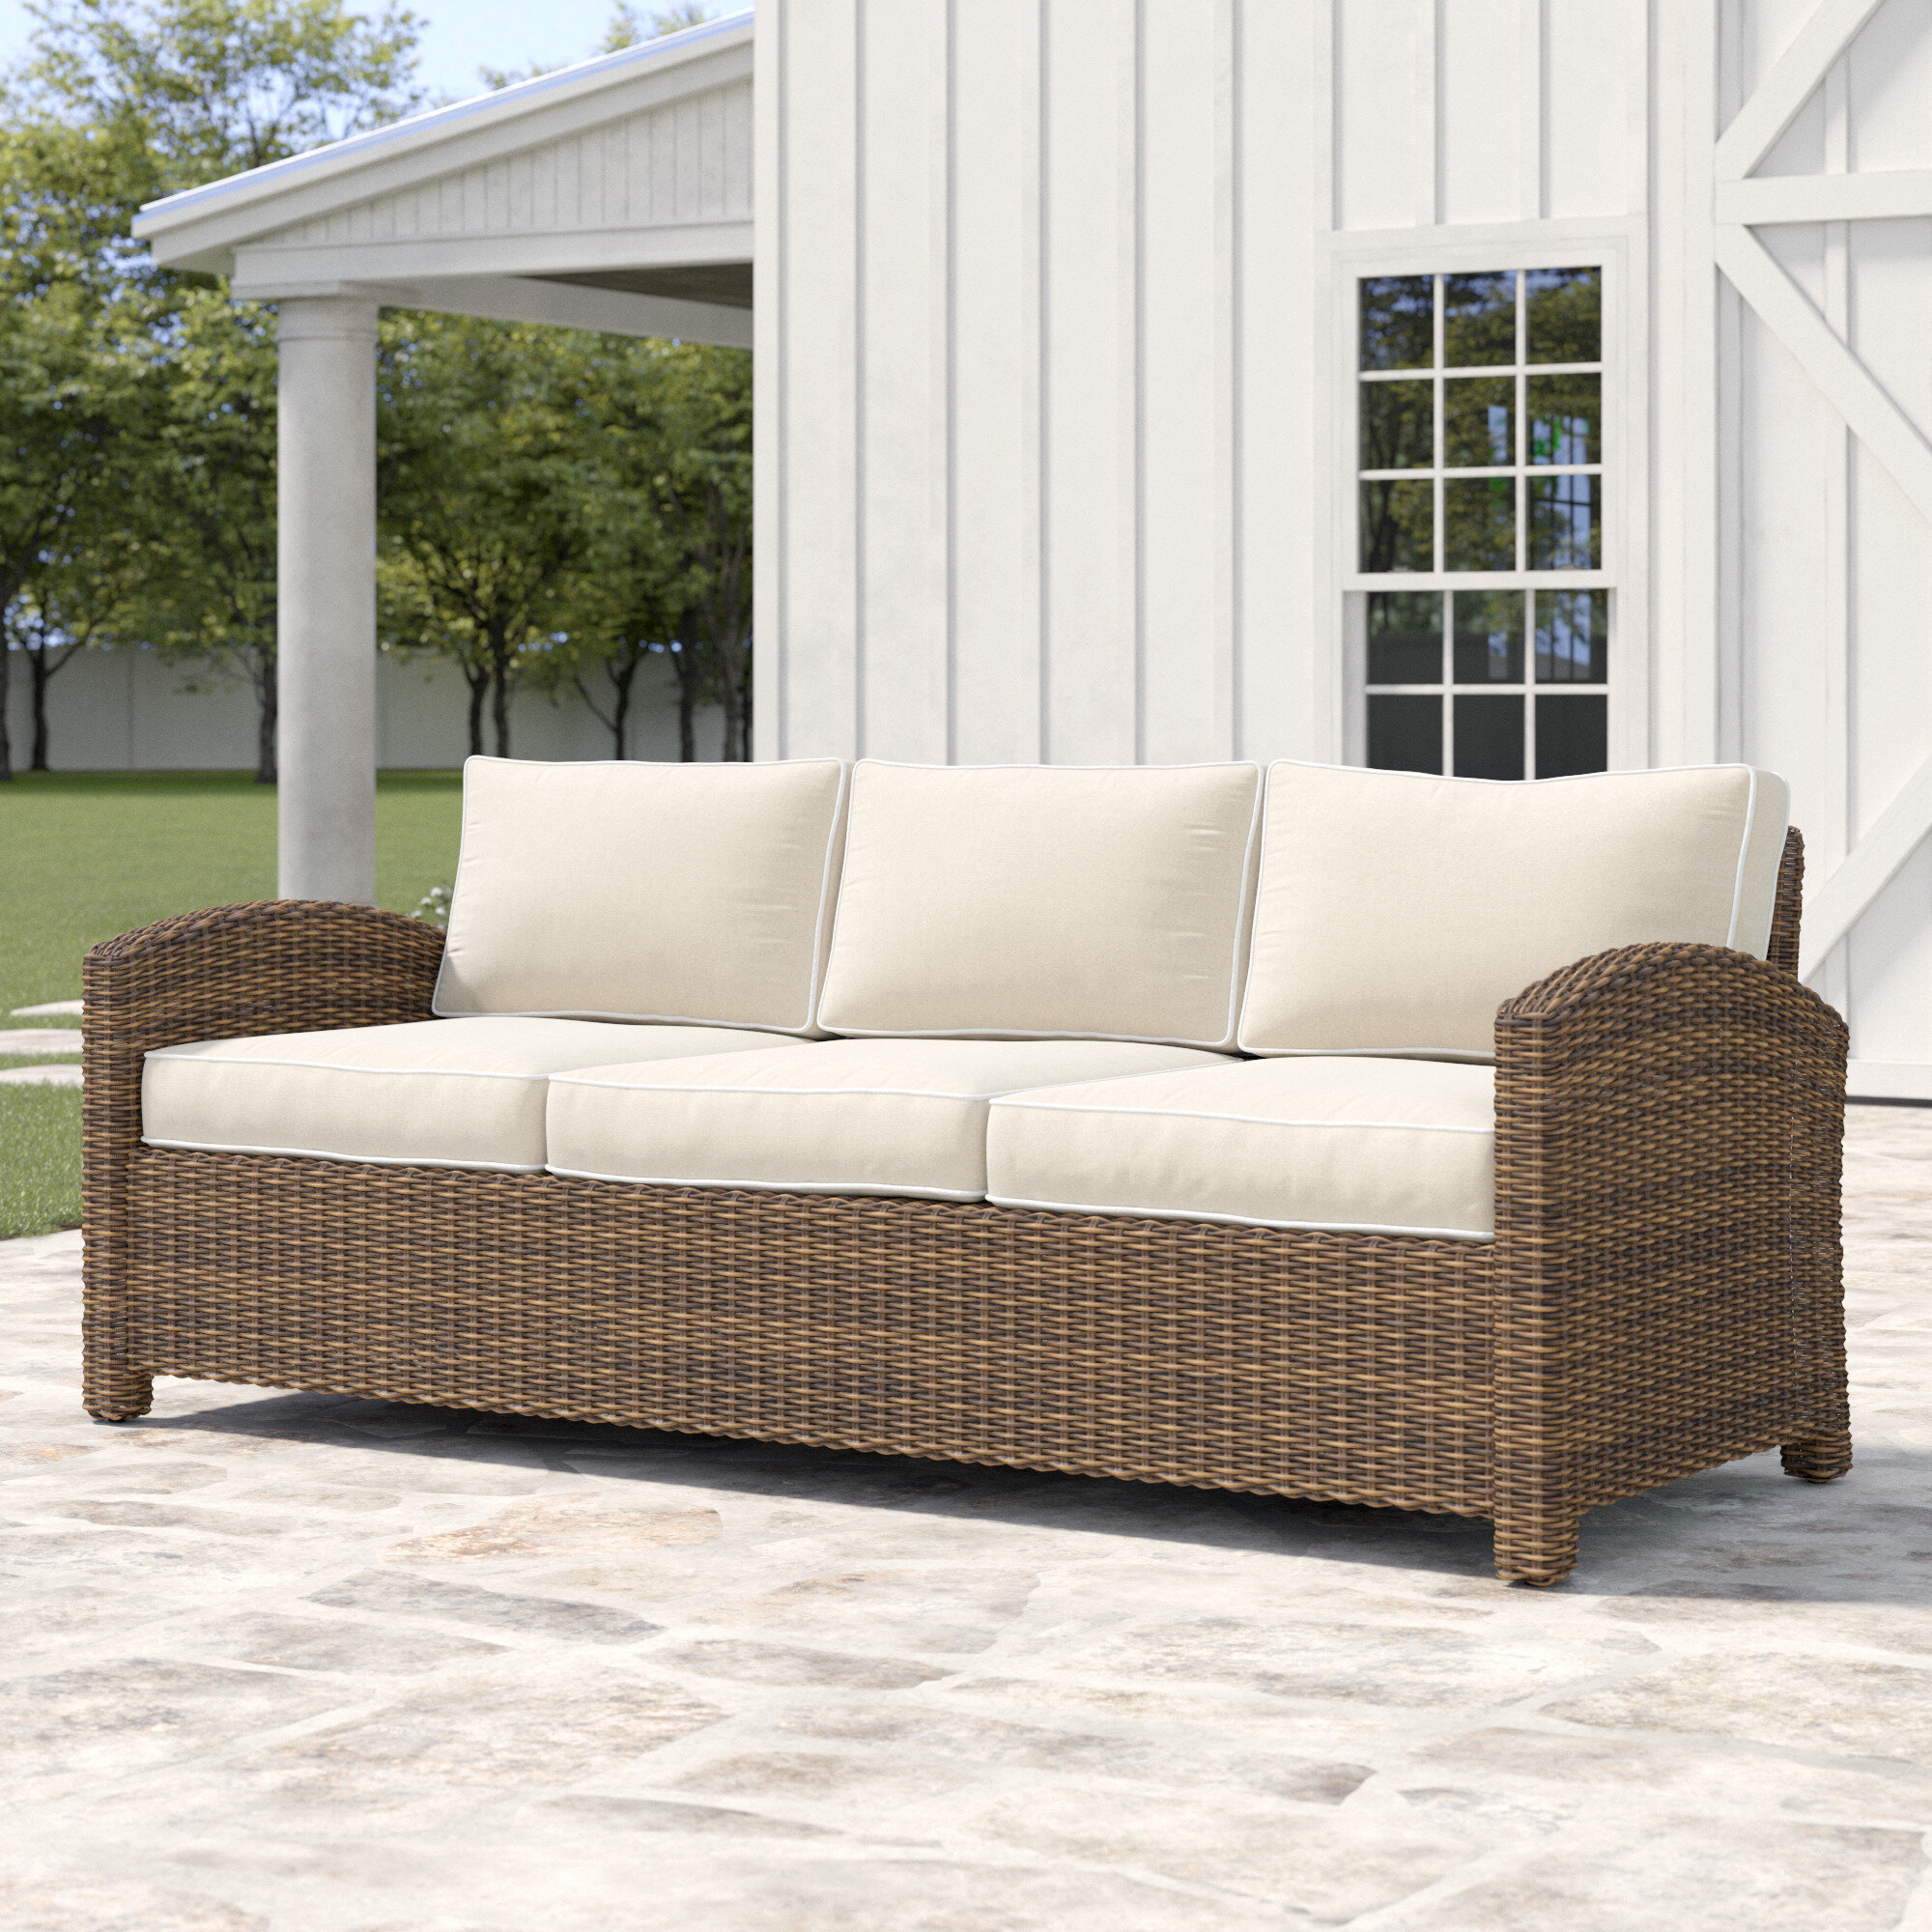 Lawson Patio Sofa With Cushions